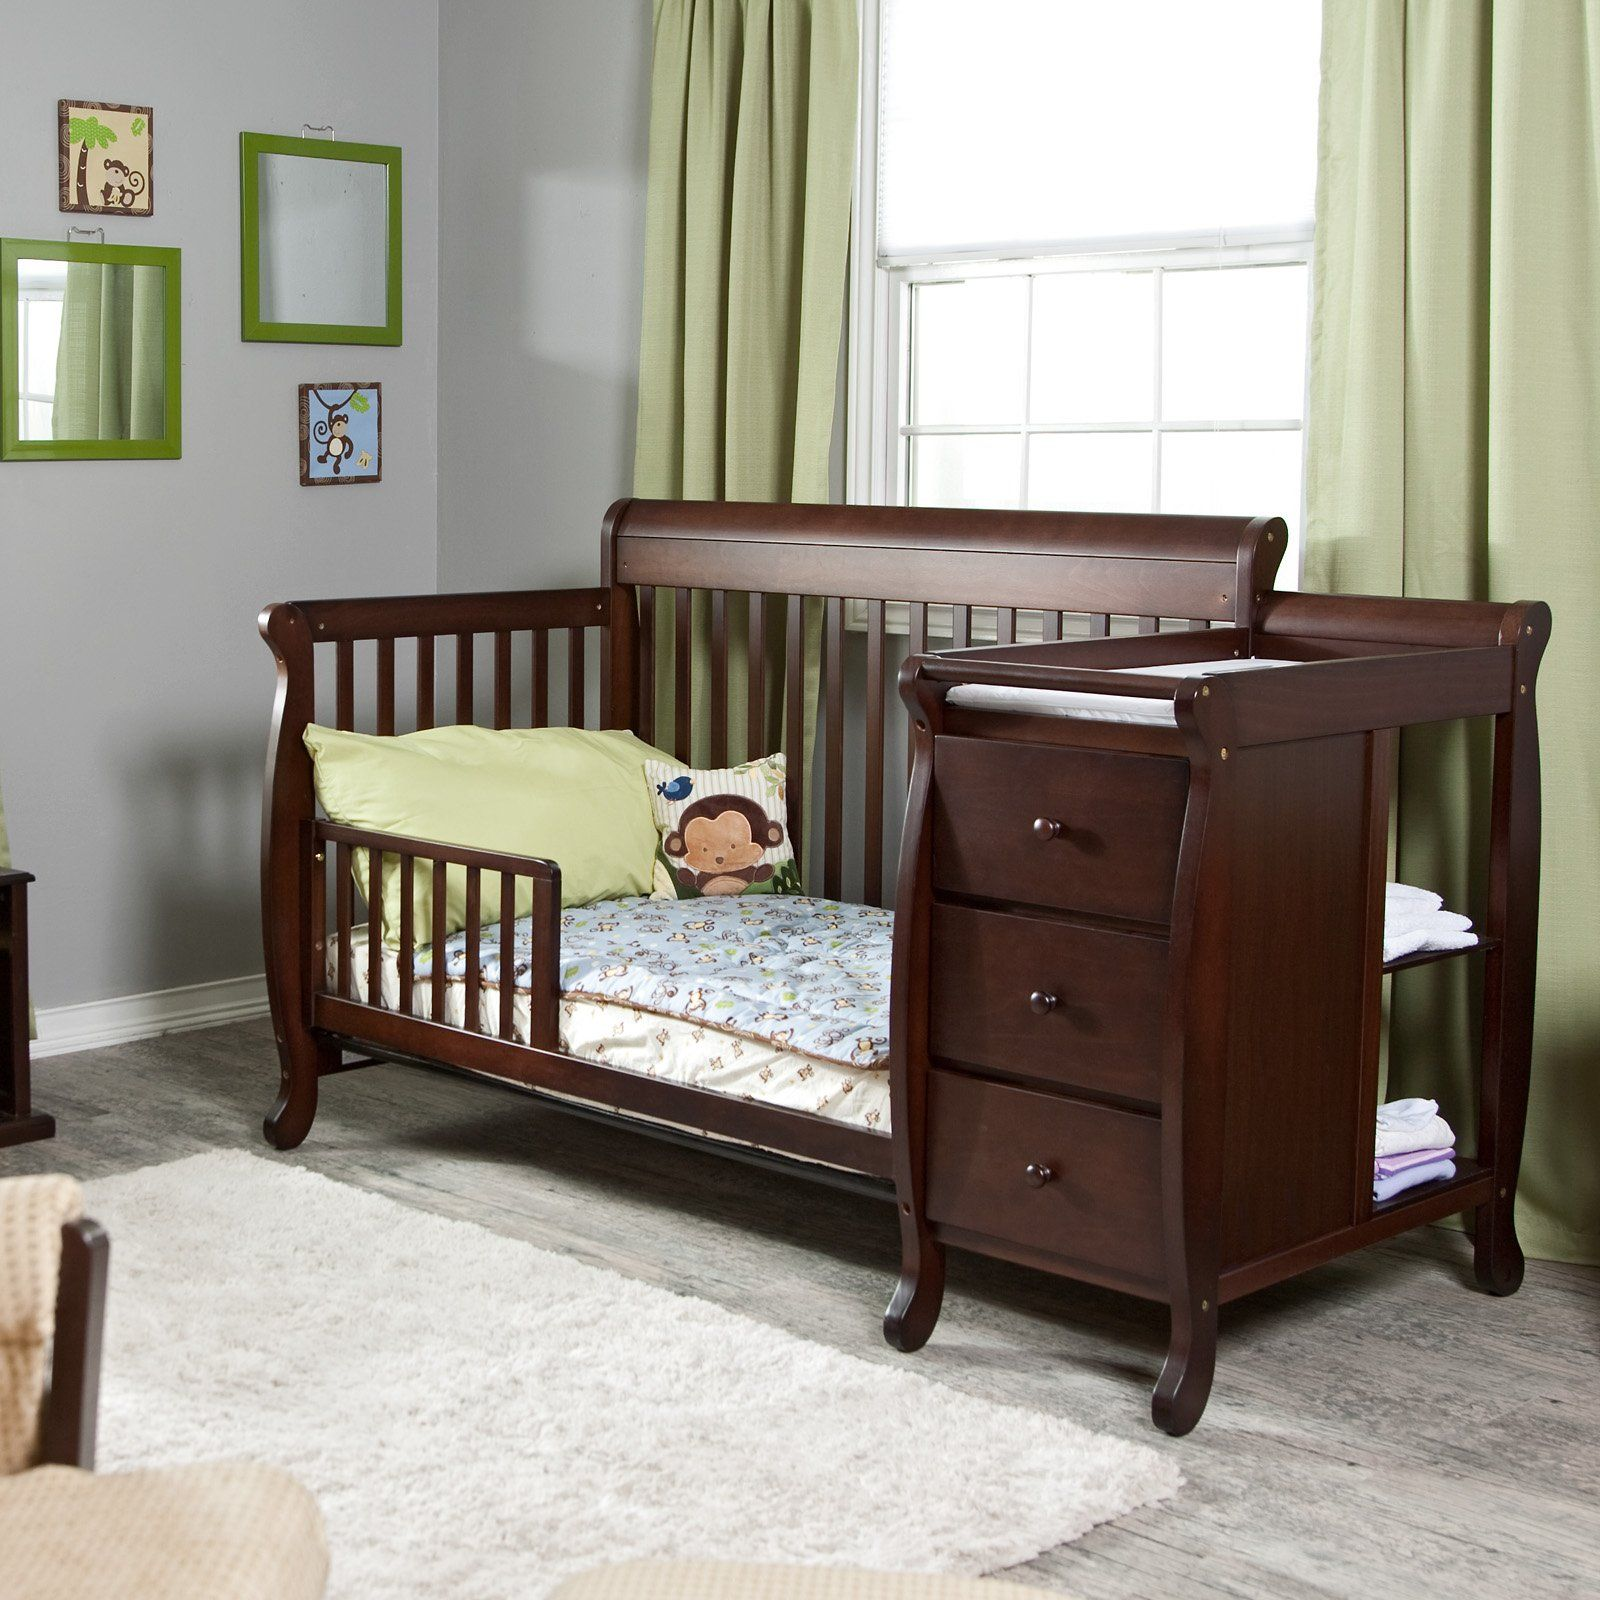 design attached crib and beautiful convertible cool baby nursery ideas of table amazing bassett changing awesome best cribs with